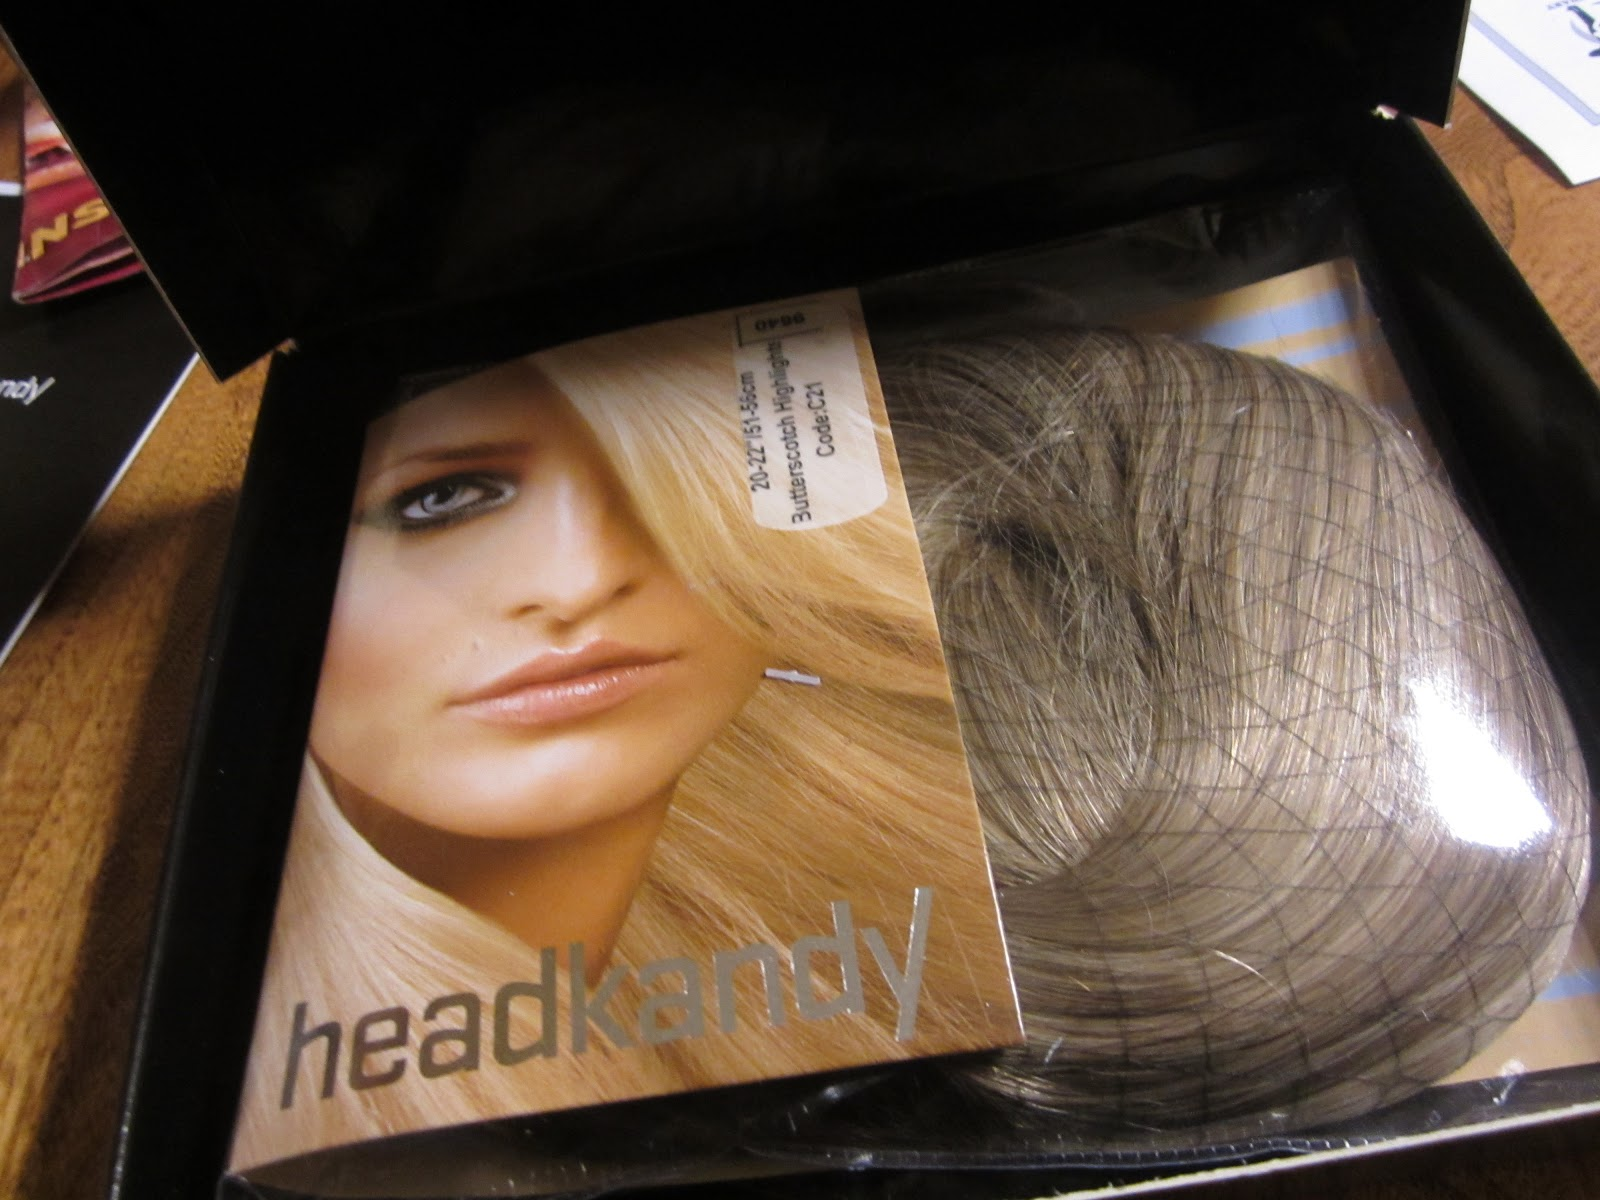 So hi headkandy hair extensions i have just received these wonderful extensions and they are absolutely lovely i cannot be more happy with them pmusecretfo Image collections